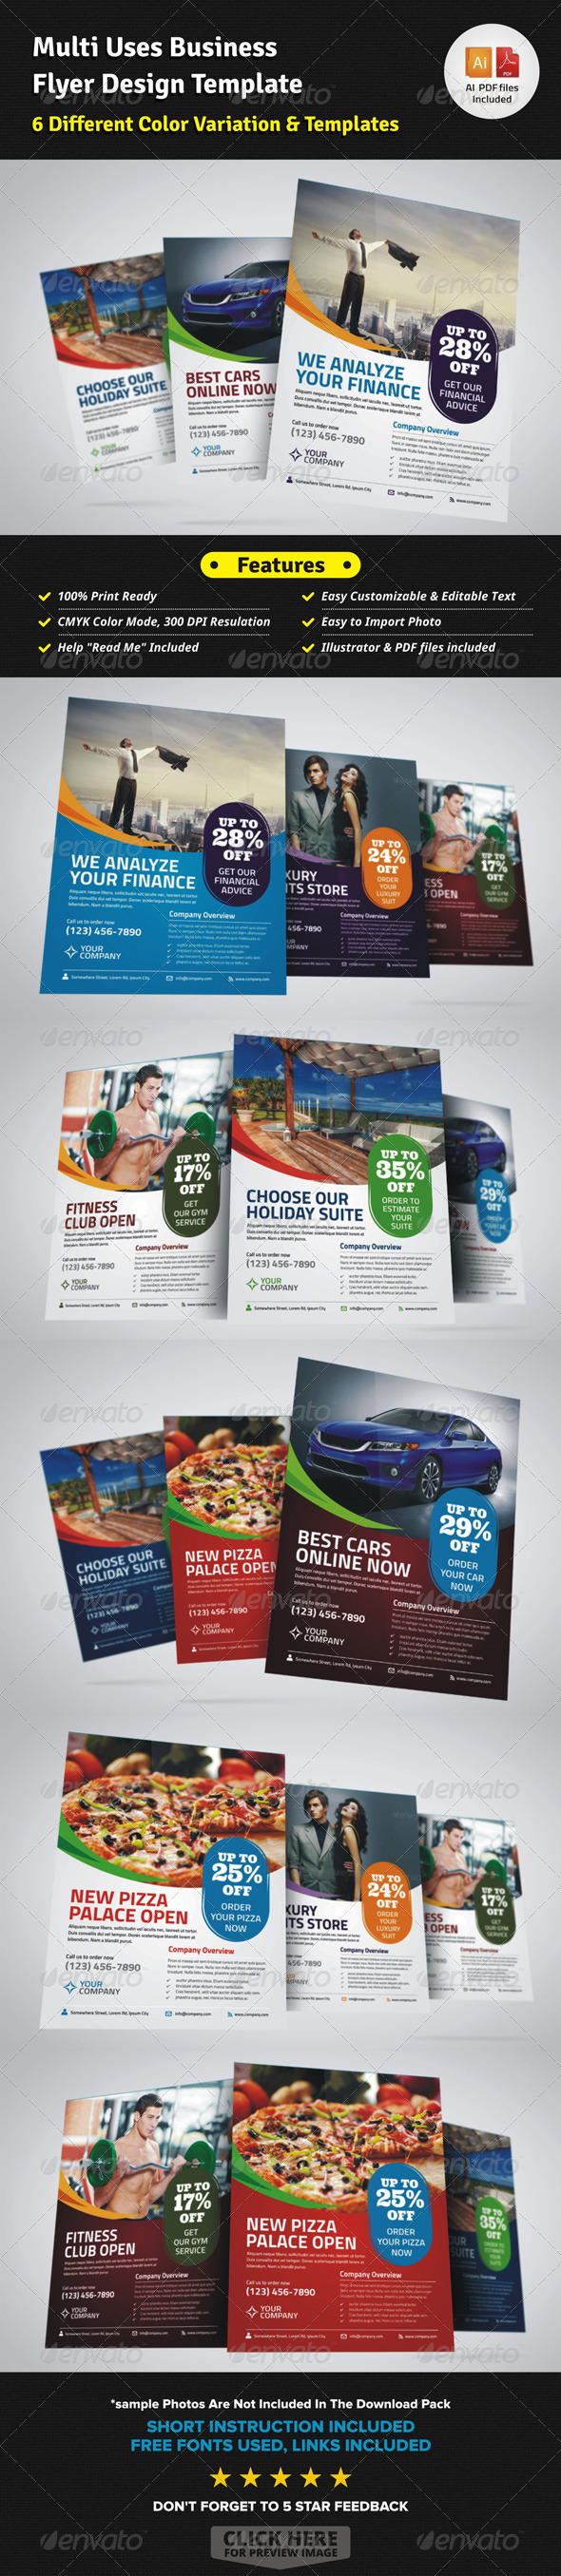 Multi Uses Business Flyer Ad Template - Corporate Flyers